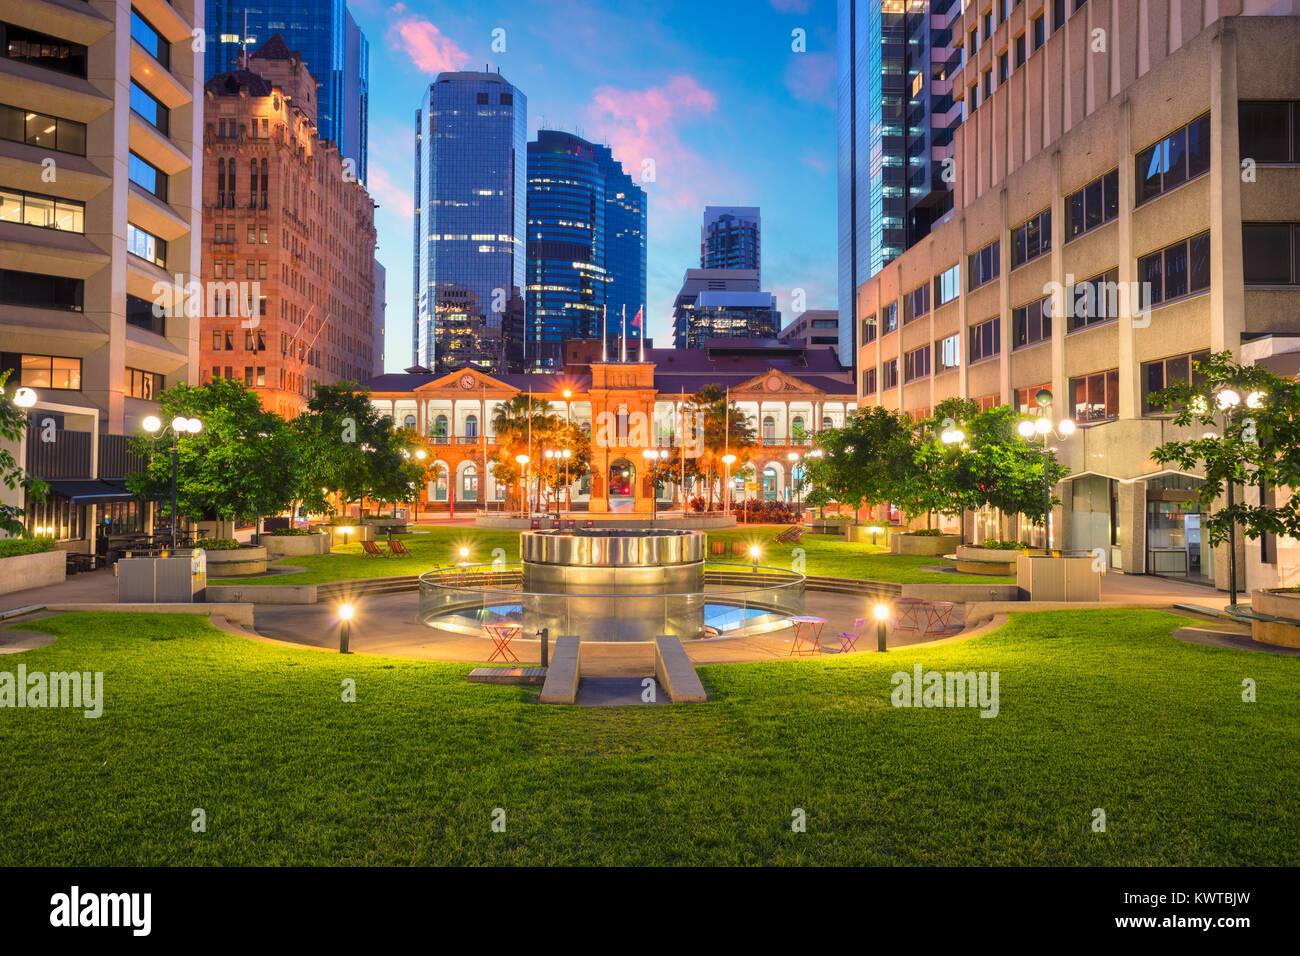 Brisbane. Cityscape image of Civic Square in Brisbane downtown, Australia during sunrise. - Stock Image